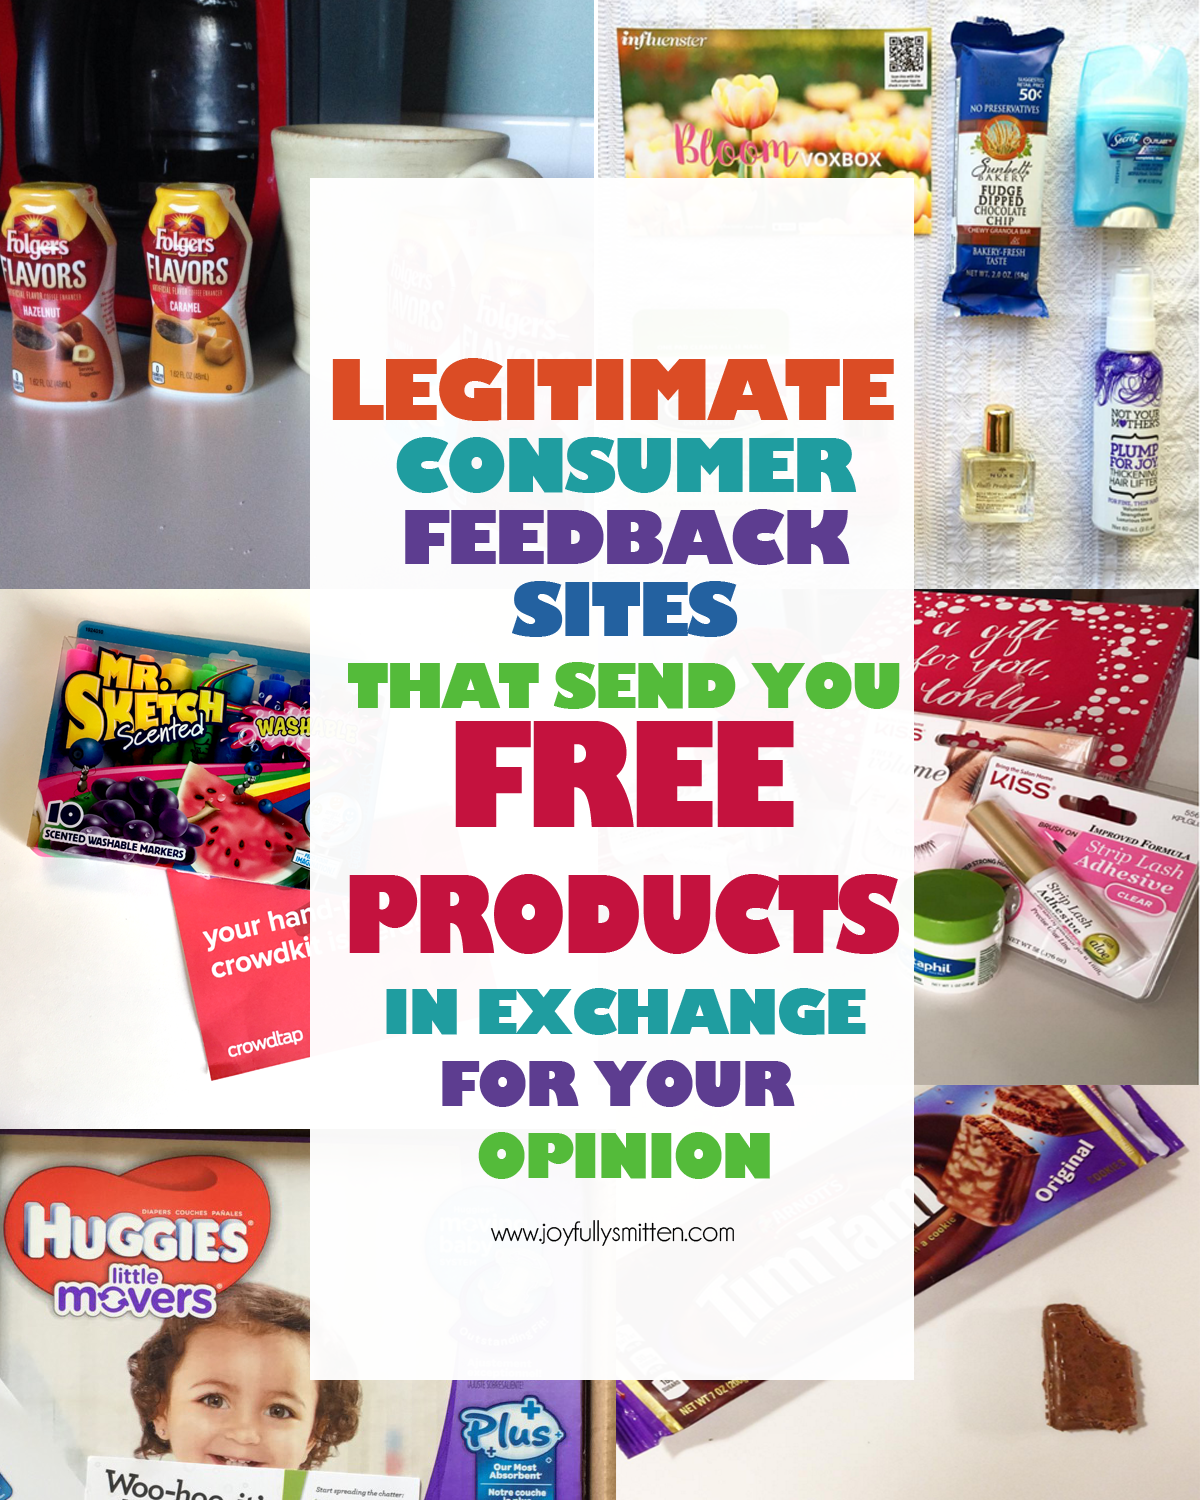 Where to Get Free Products for Your Opinion